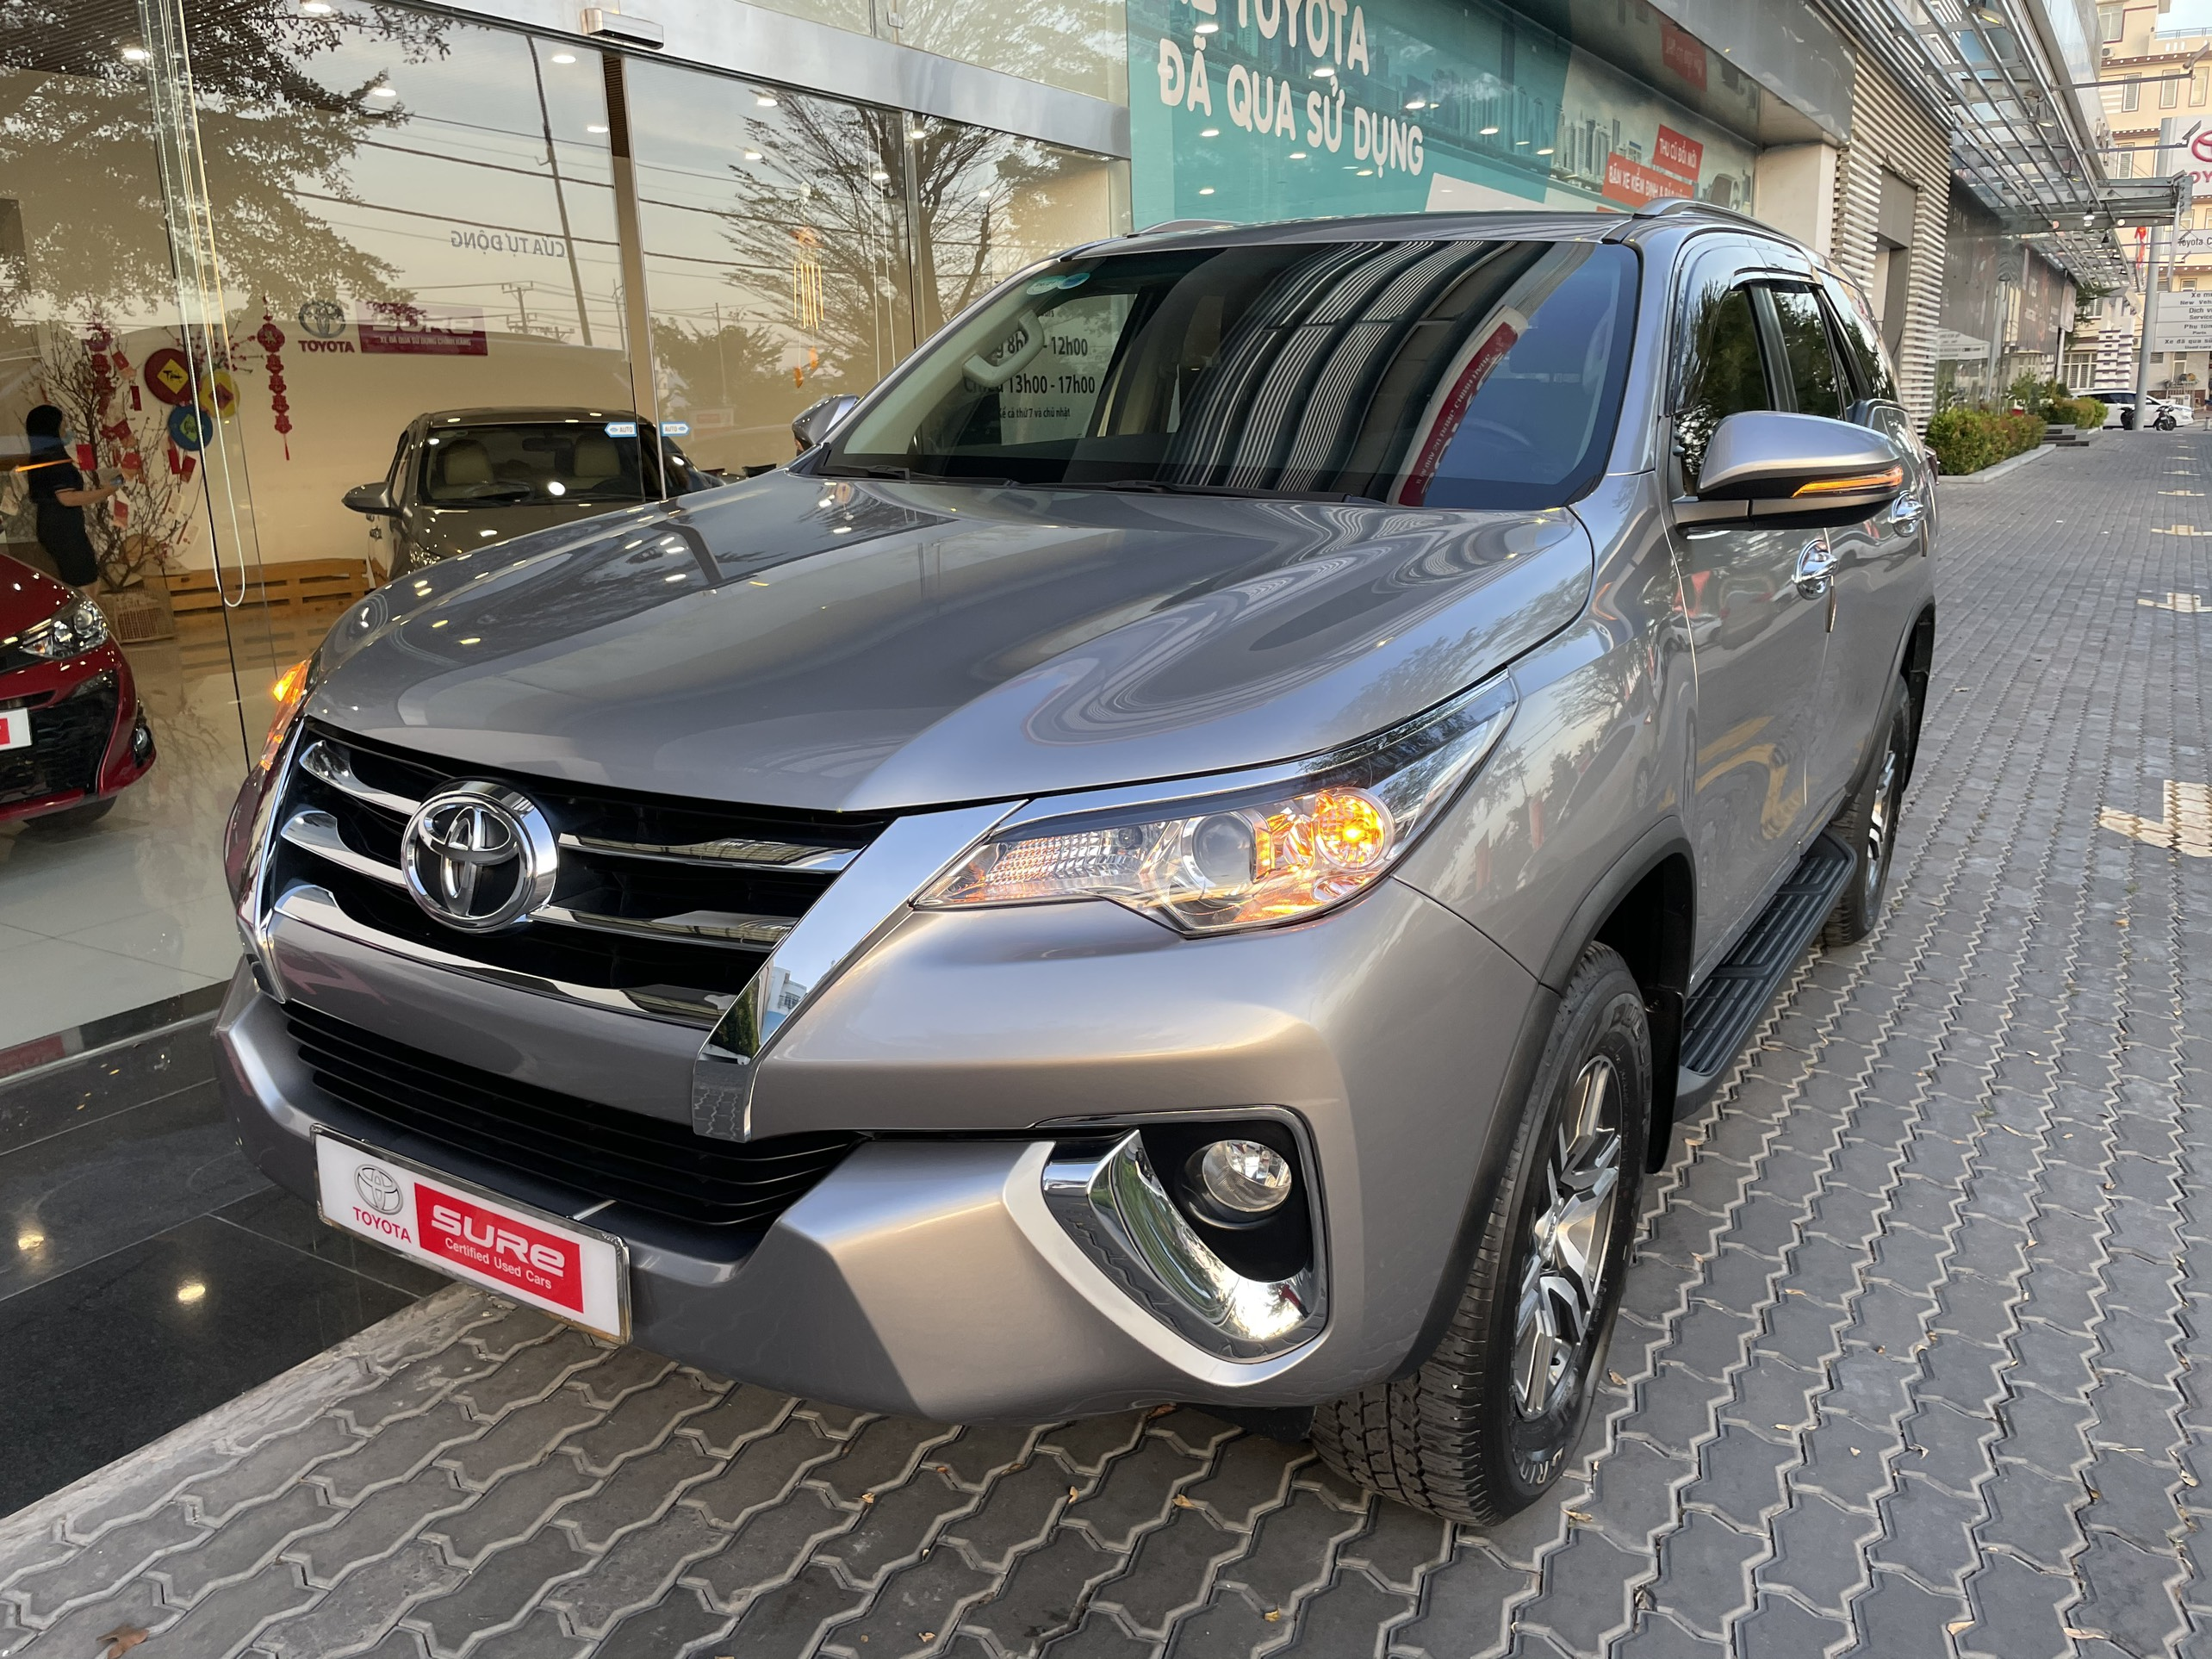 TOYOTA FORTUENR G AT 2018 Nhập khẩu INDONESIA